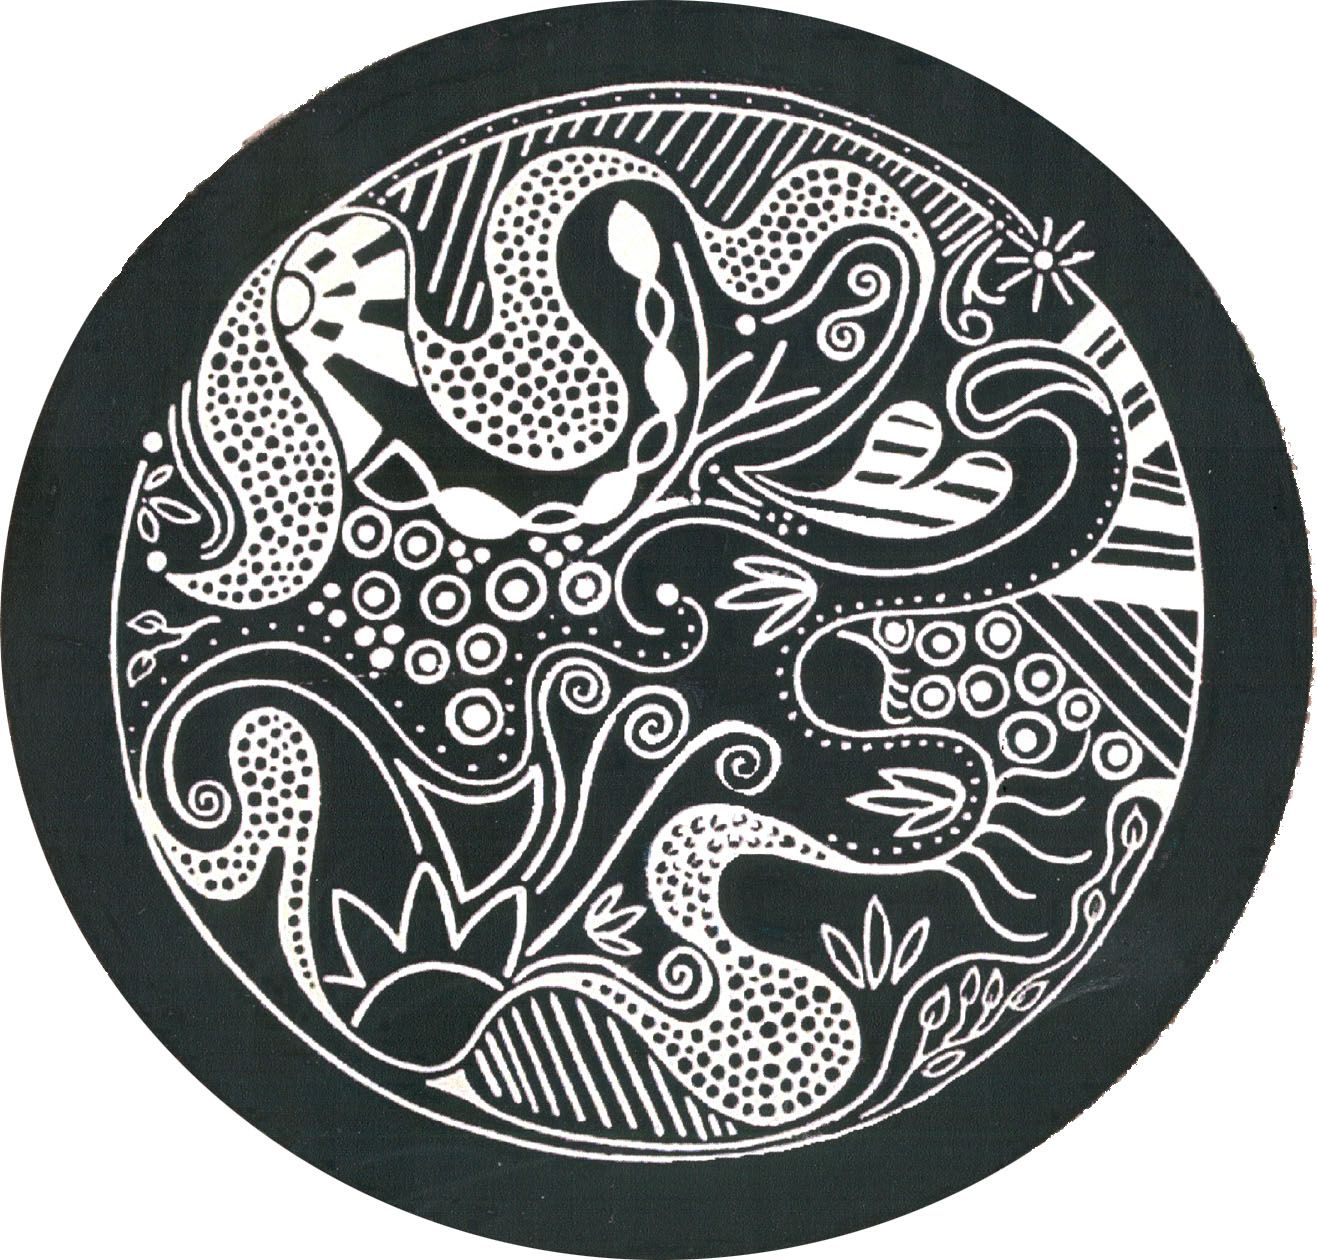 black and white plate sgraffito by Kelly Sieckhaus